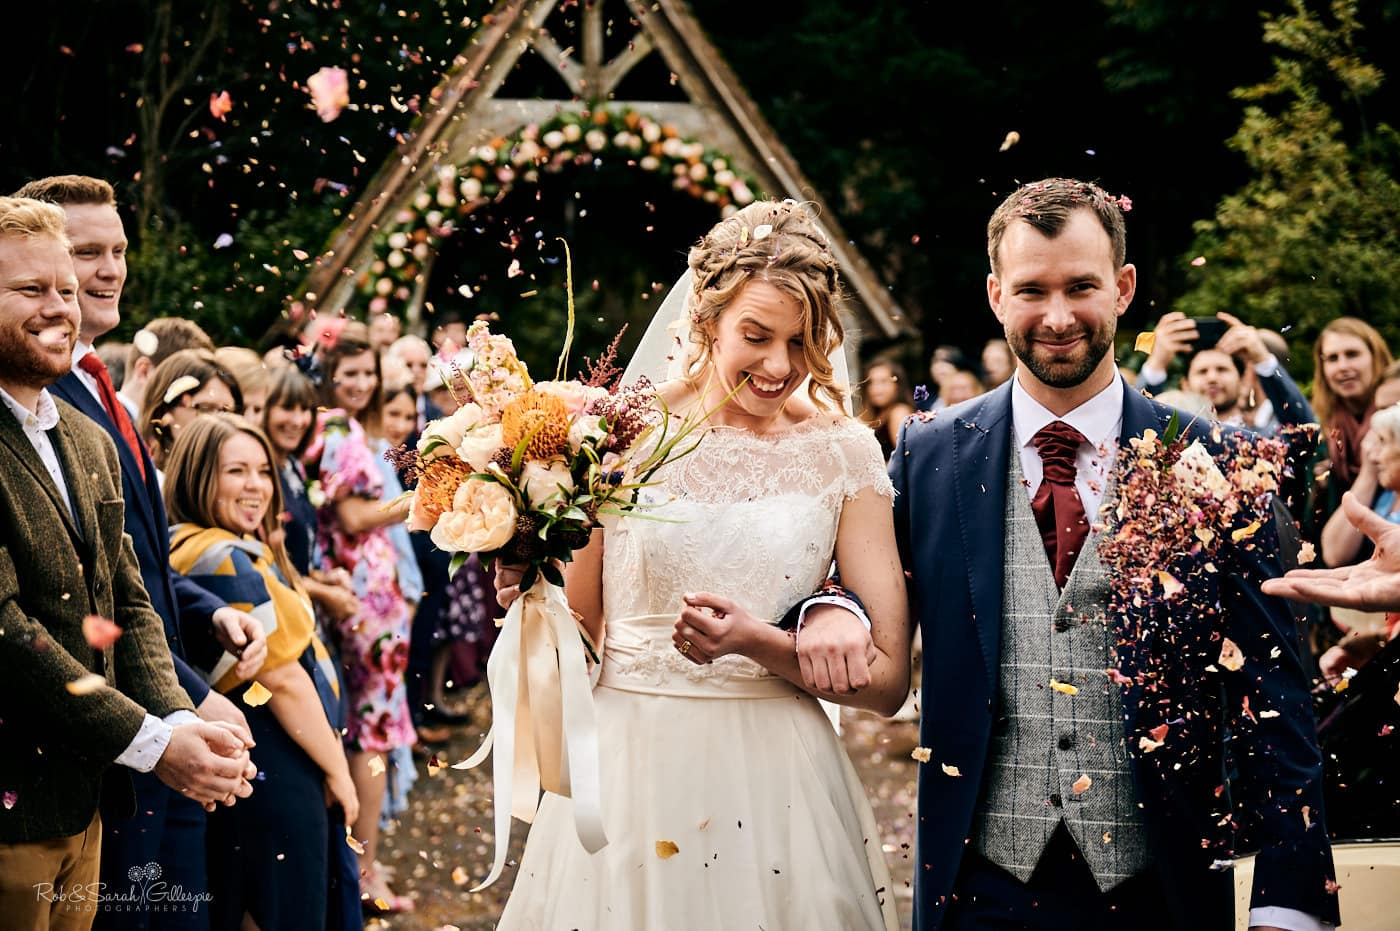 Wedding confetti throw